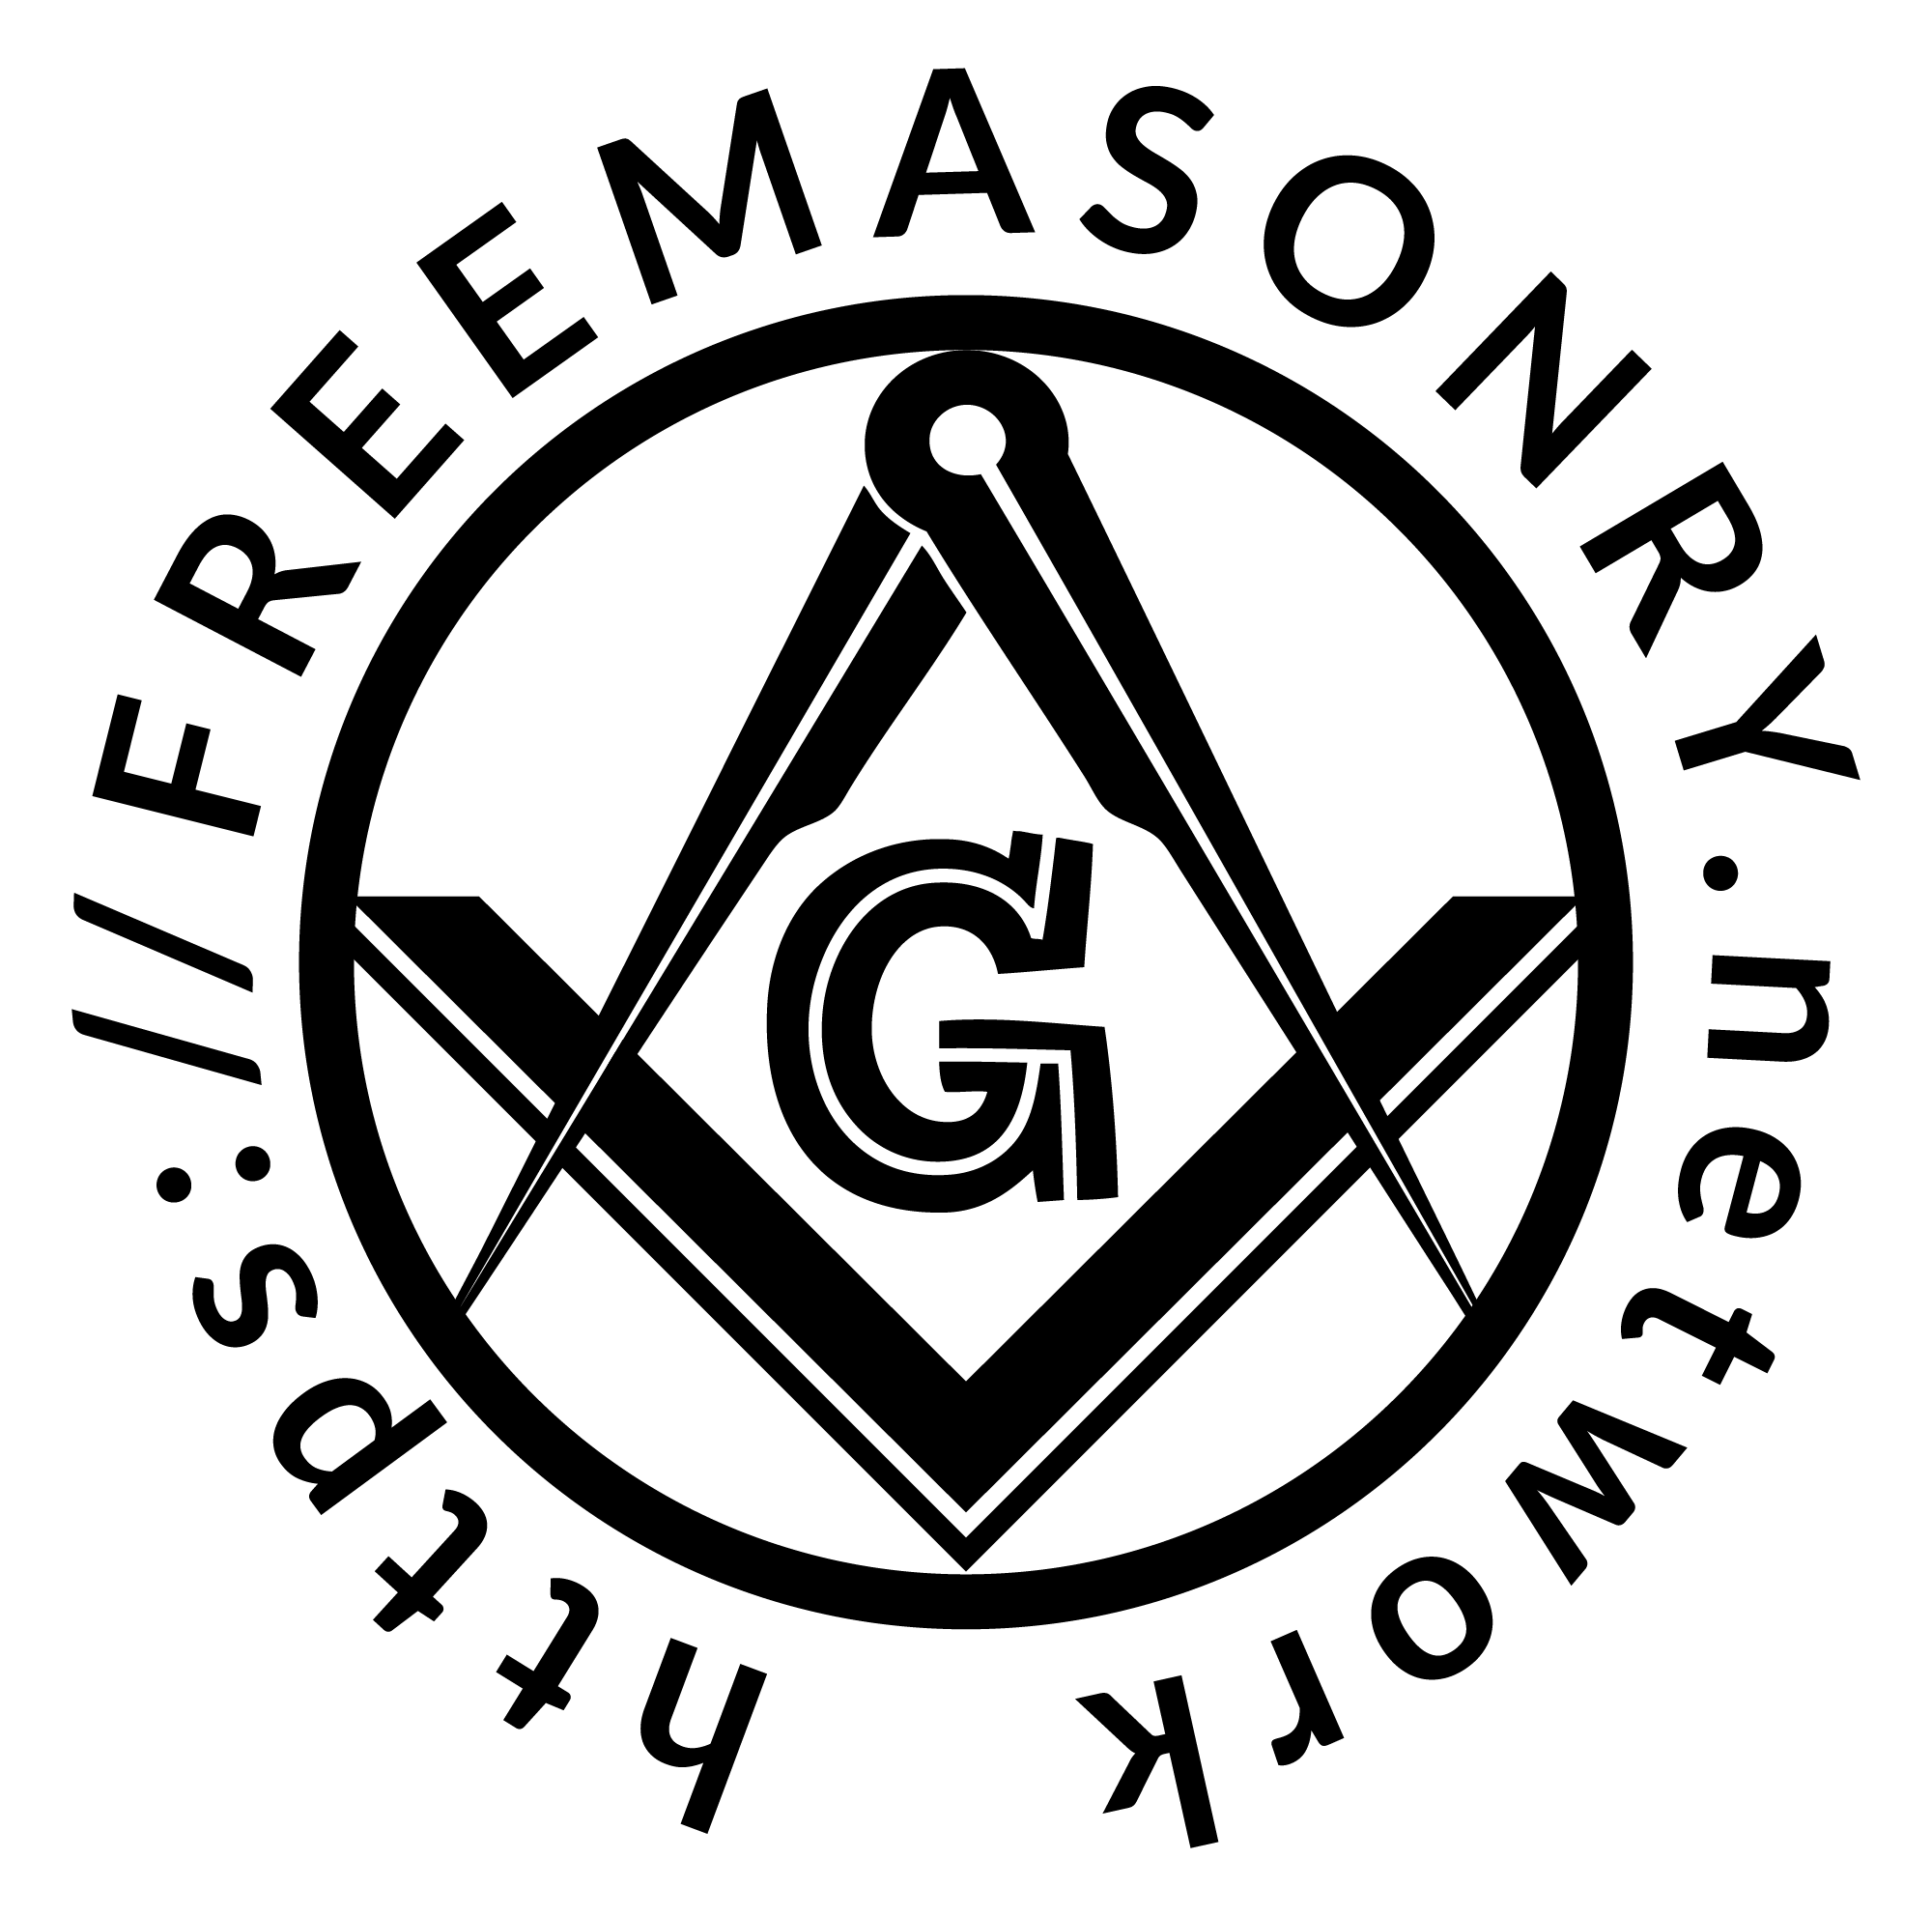 WILLIAM PRESTON - A FREEMASON